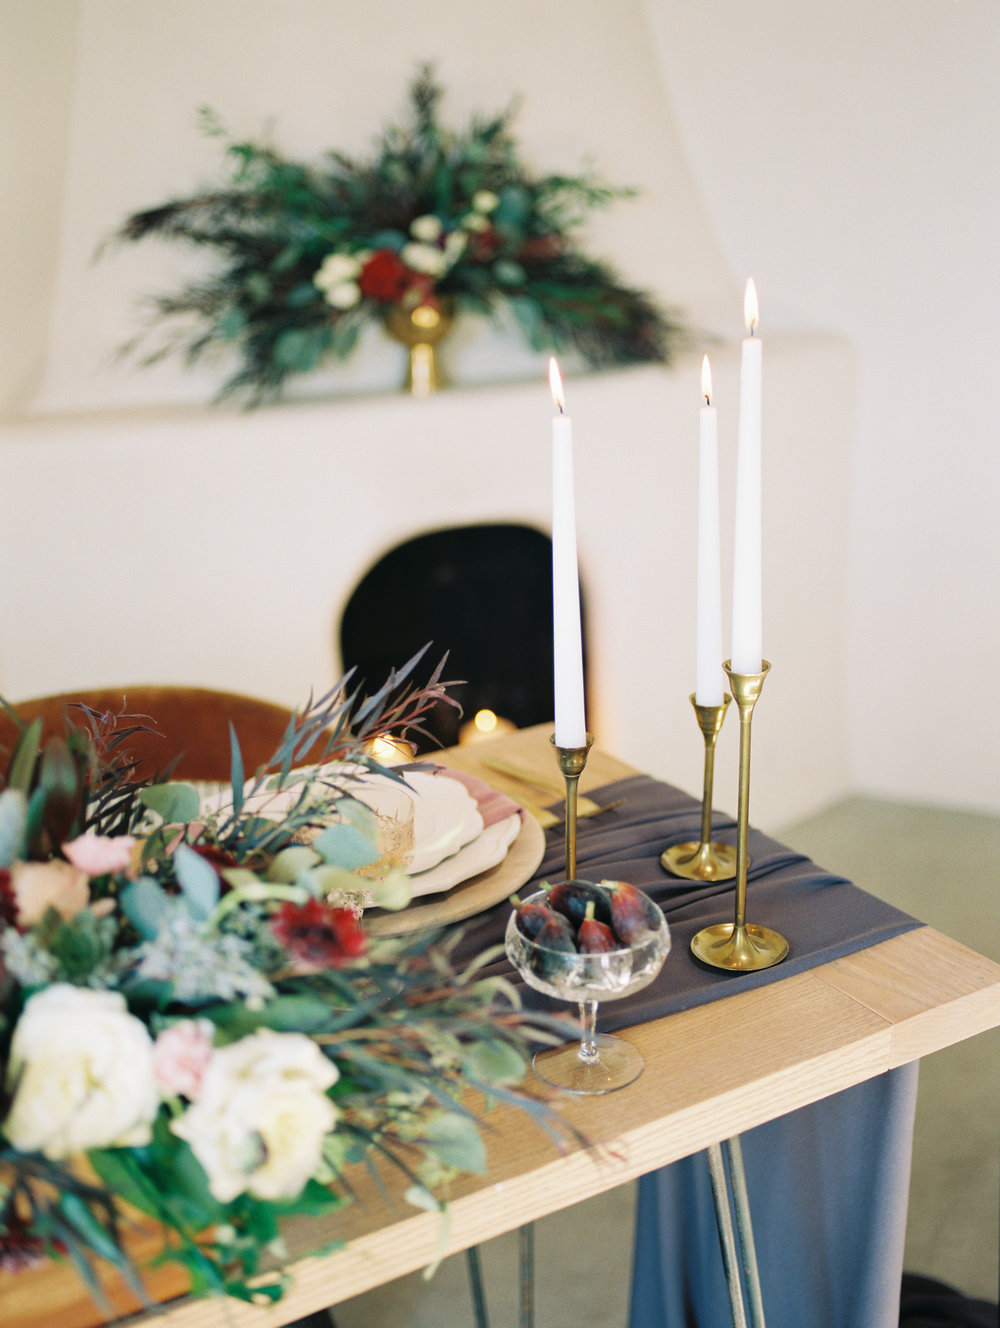 Stunning tablescape by Le Champagne Projects captured by Tucson film wedding photographers Betsy & John on portra 800